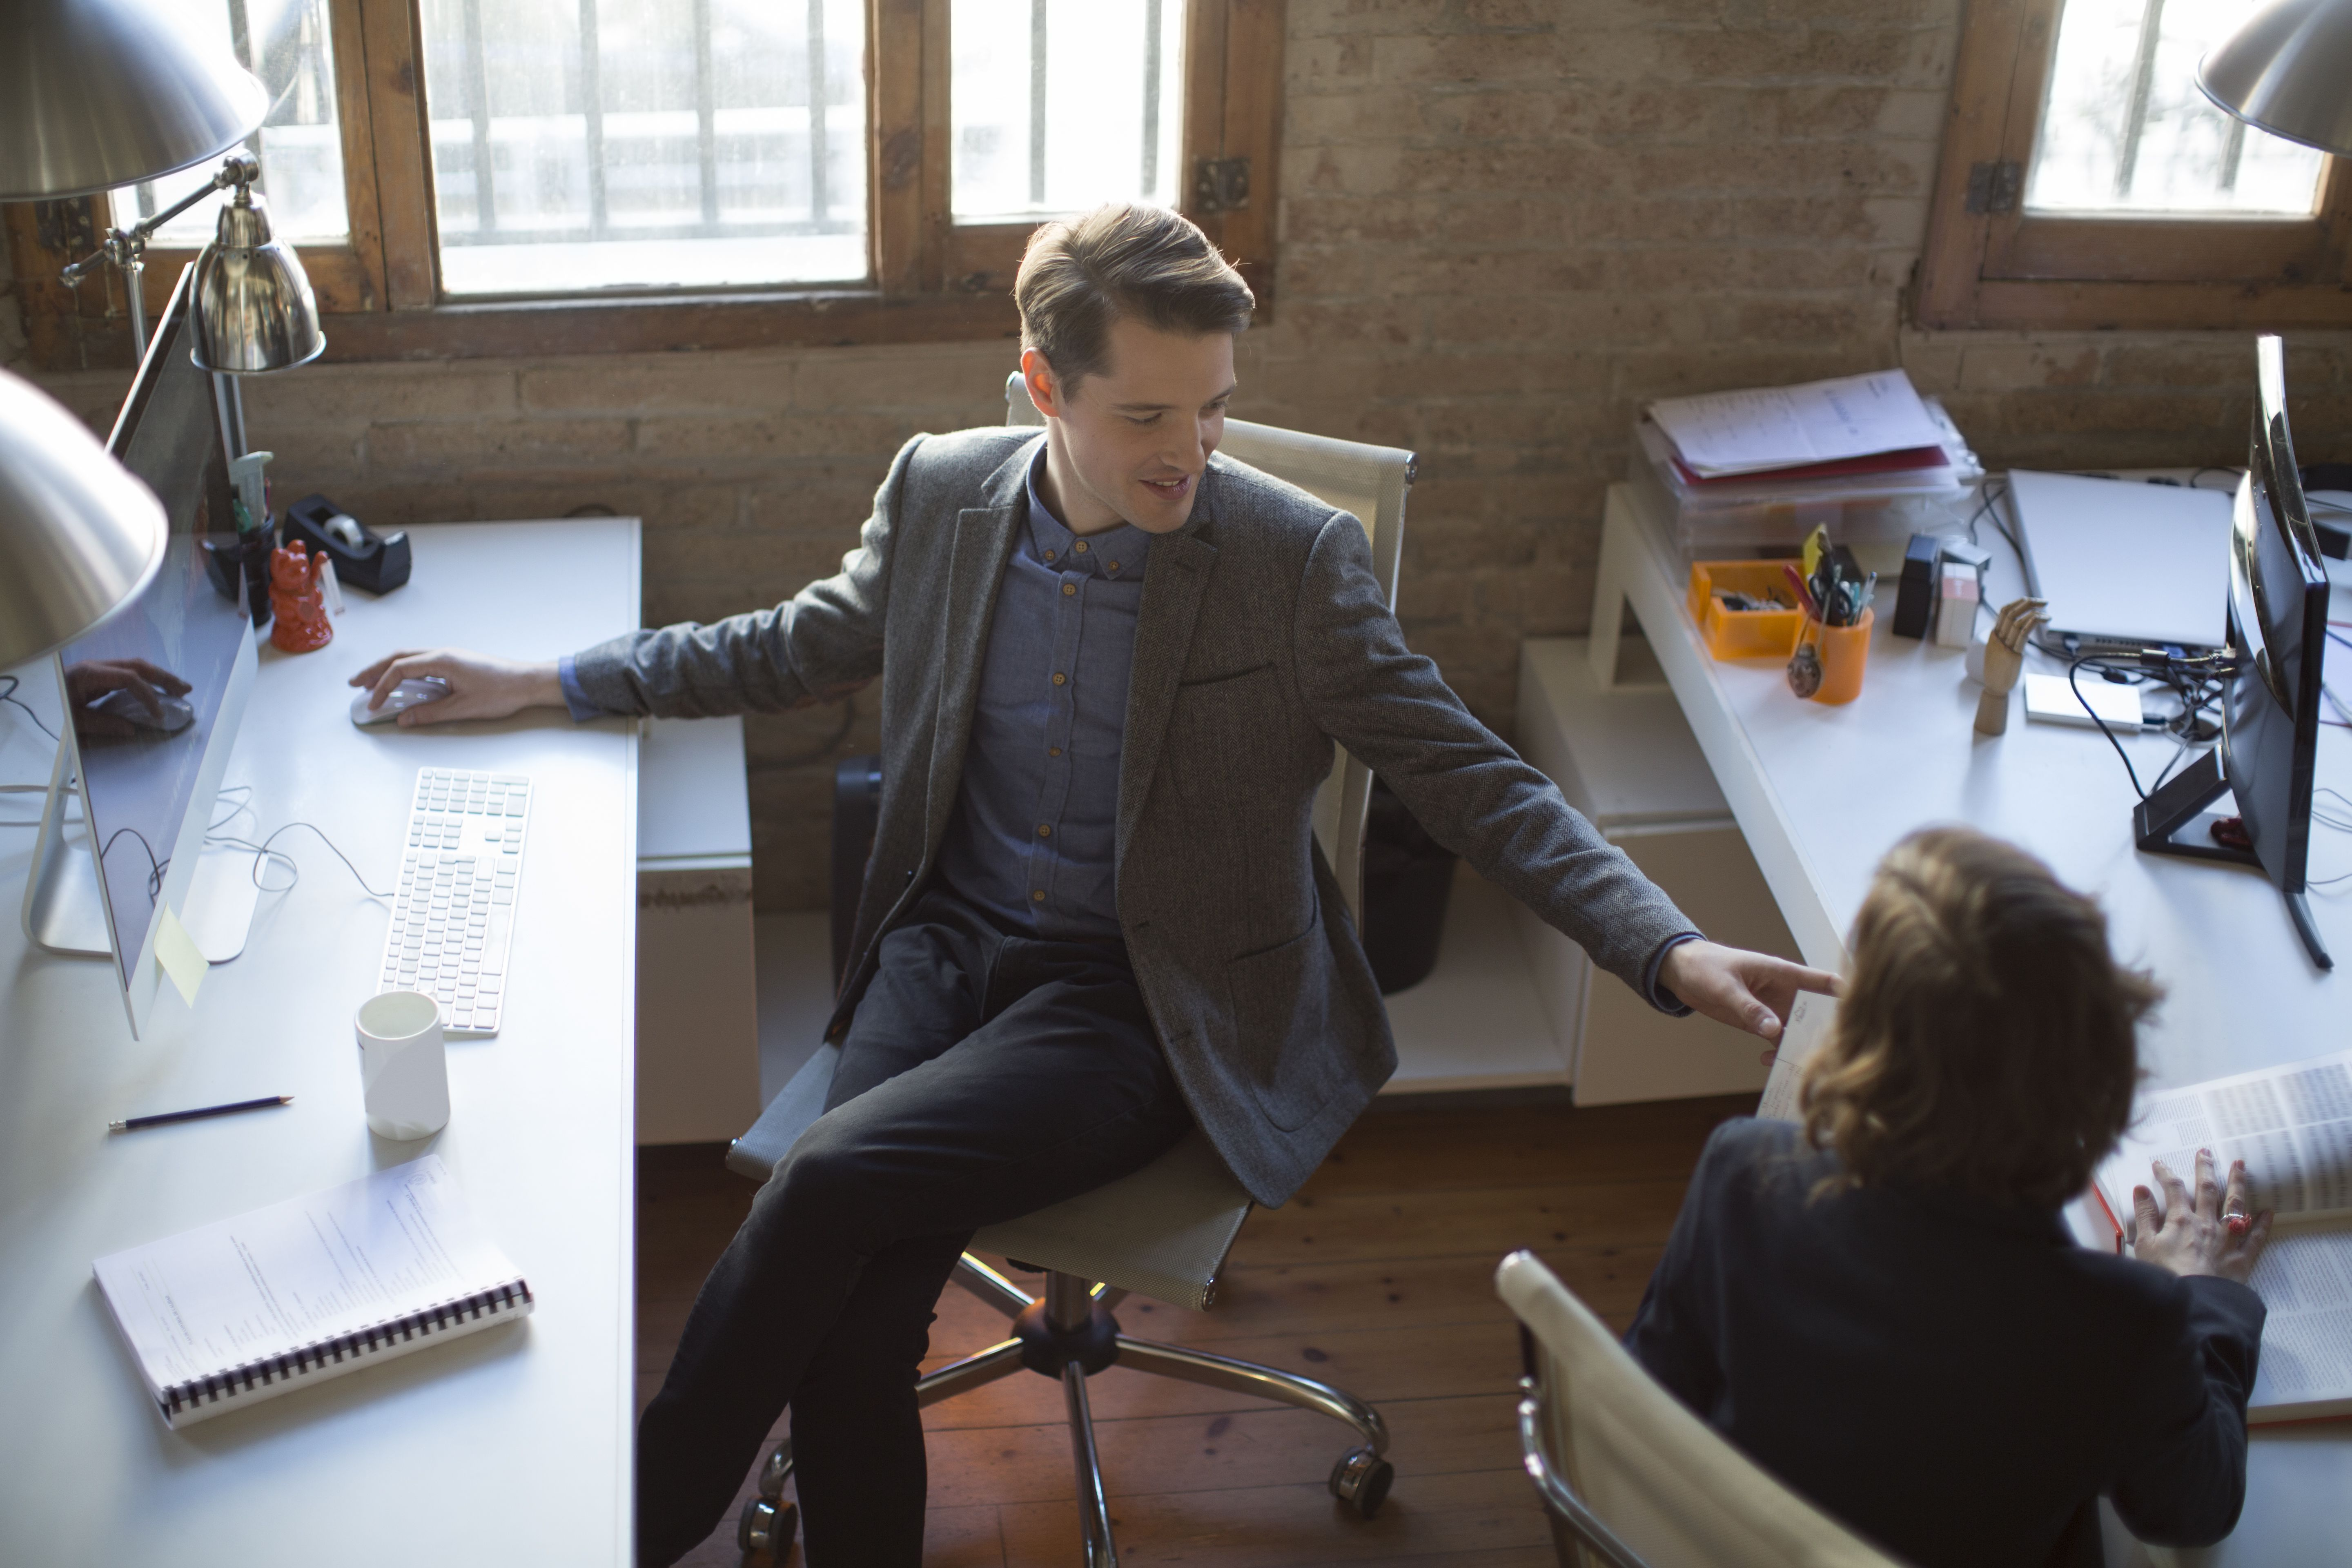 Two people working and interacting at desks in a co-working space